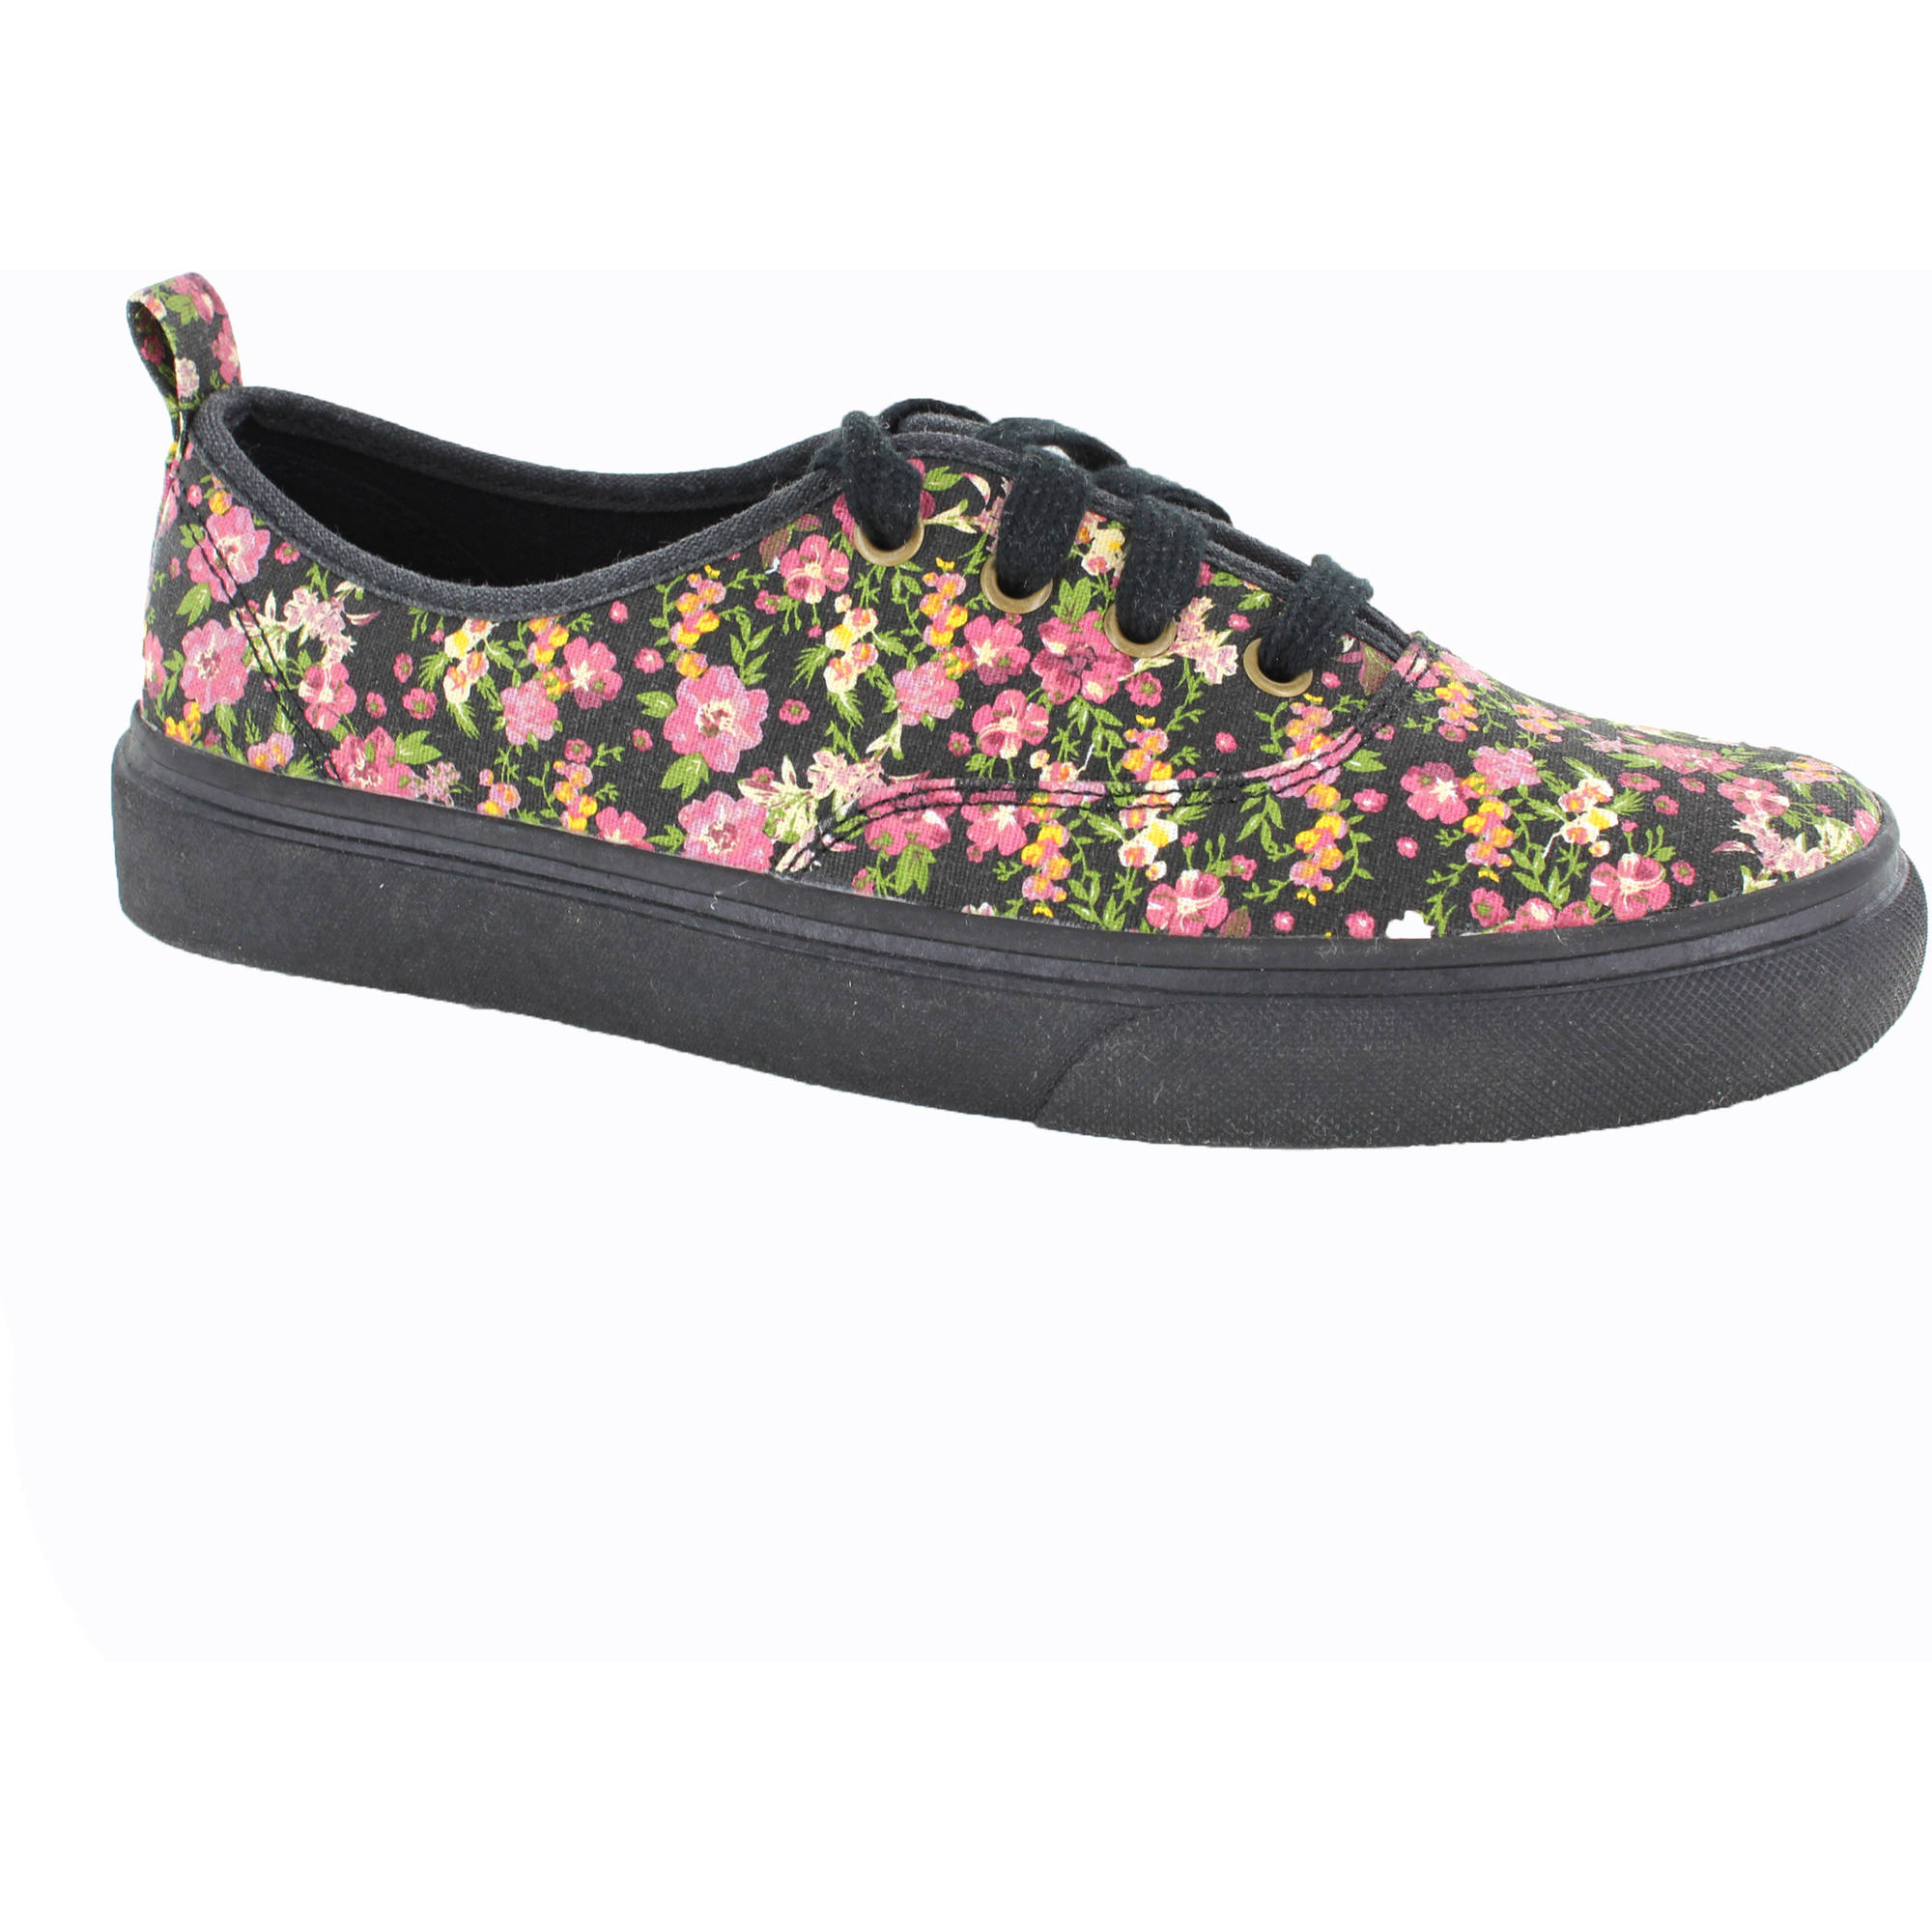 Faded Glory Women's Printed Canvas Sneaker